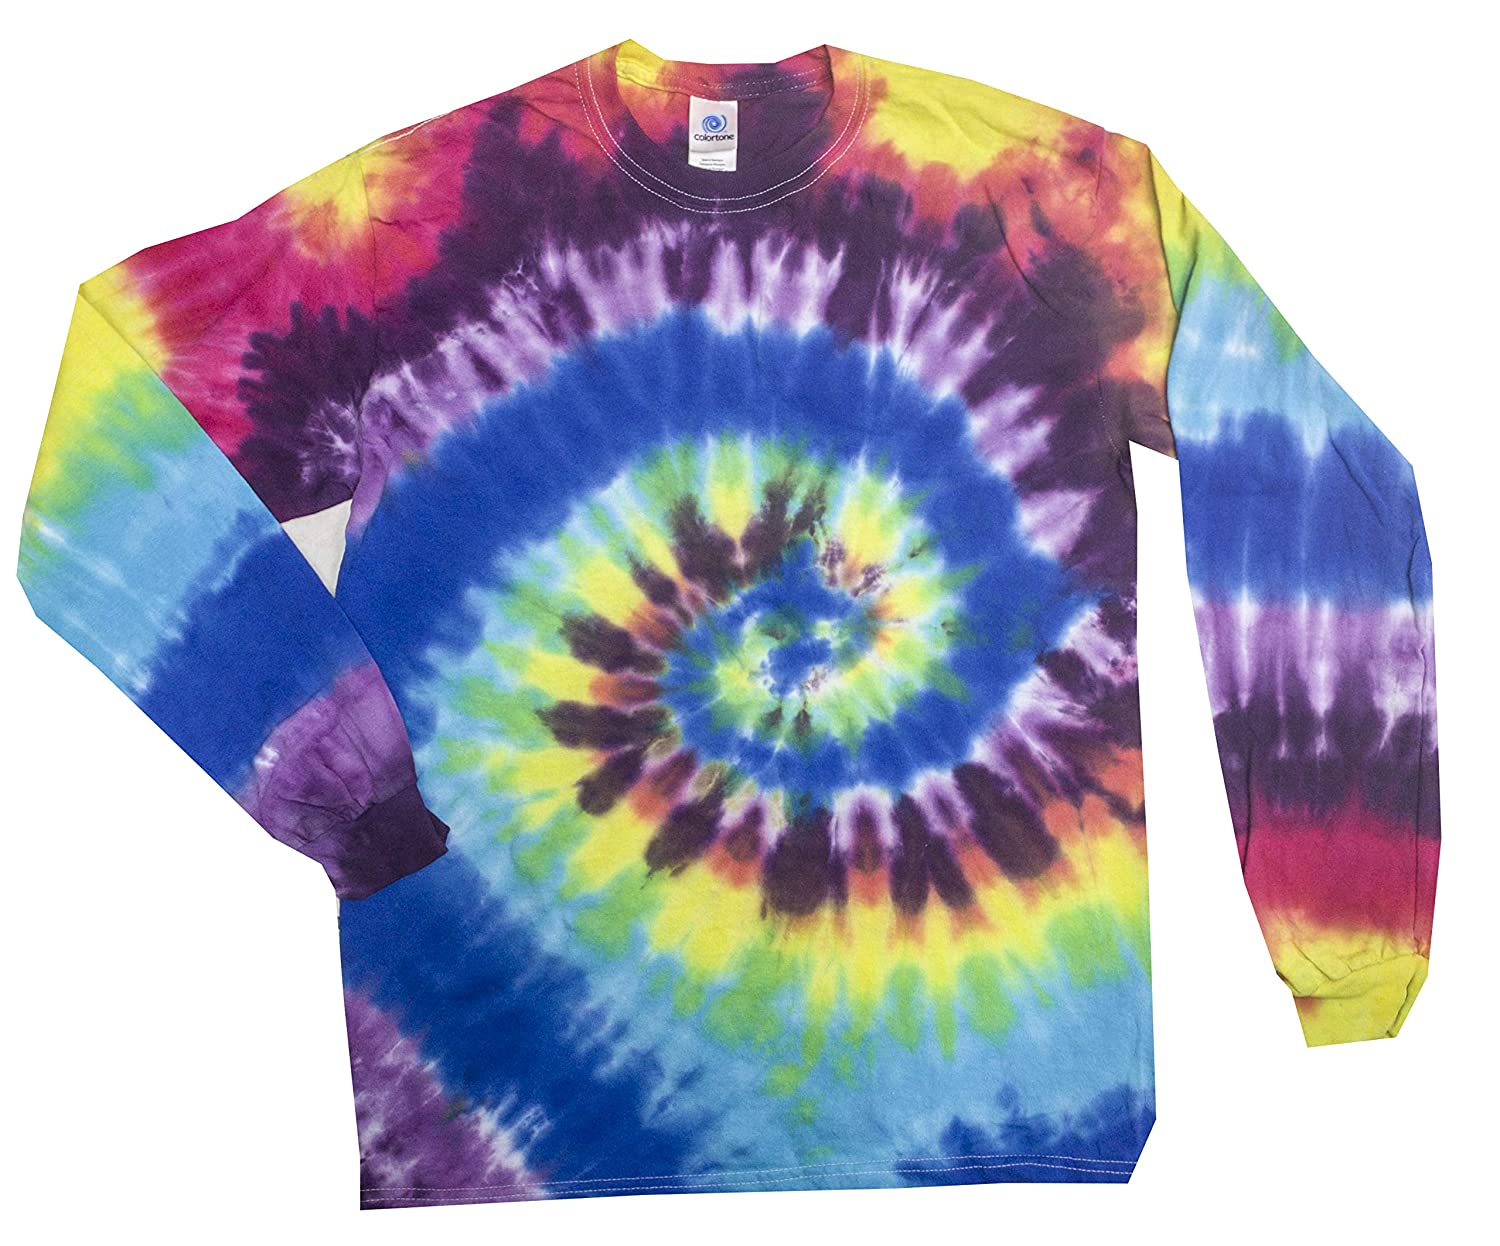 b7d765faff7327 Colortone Youth   Adult Tie Dye Long Sleeve T-Shirt  1541003676 ...